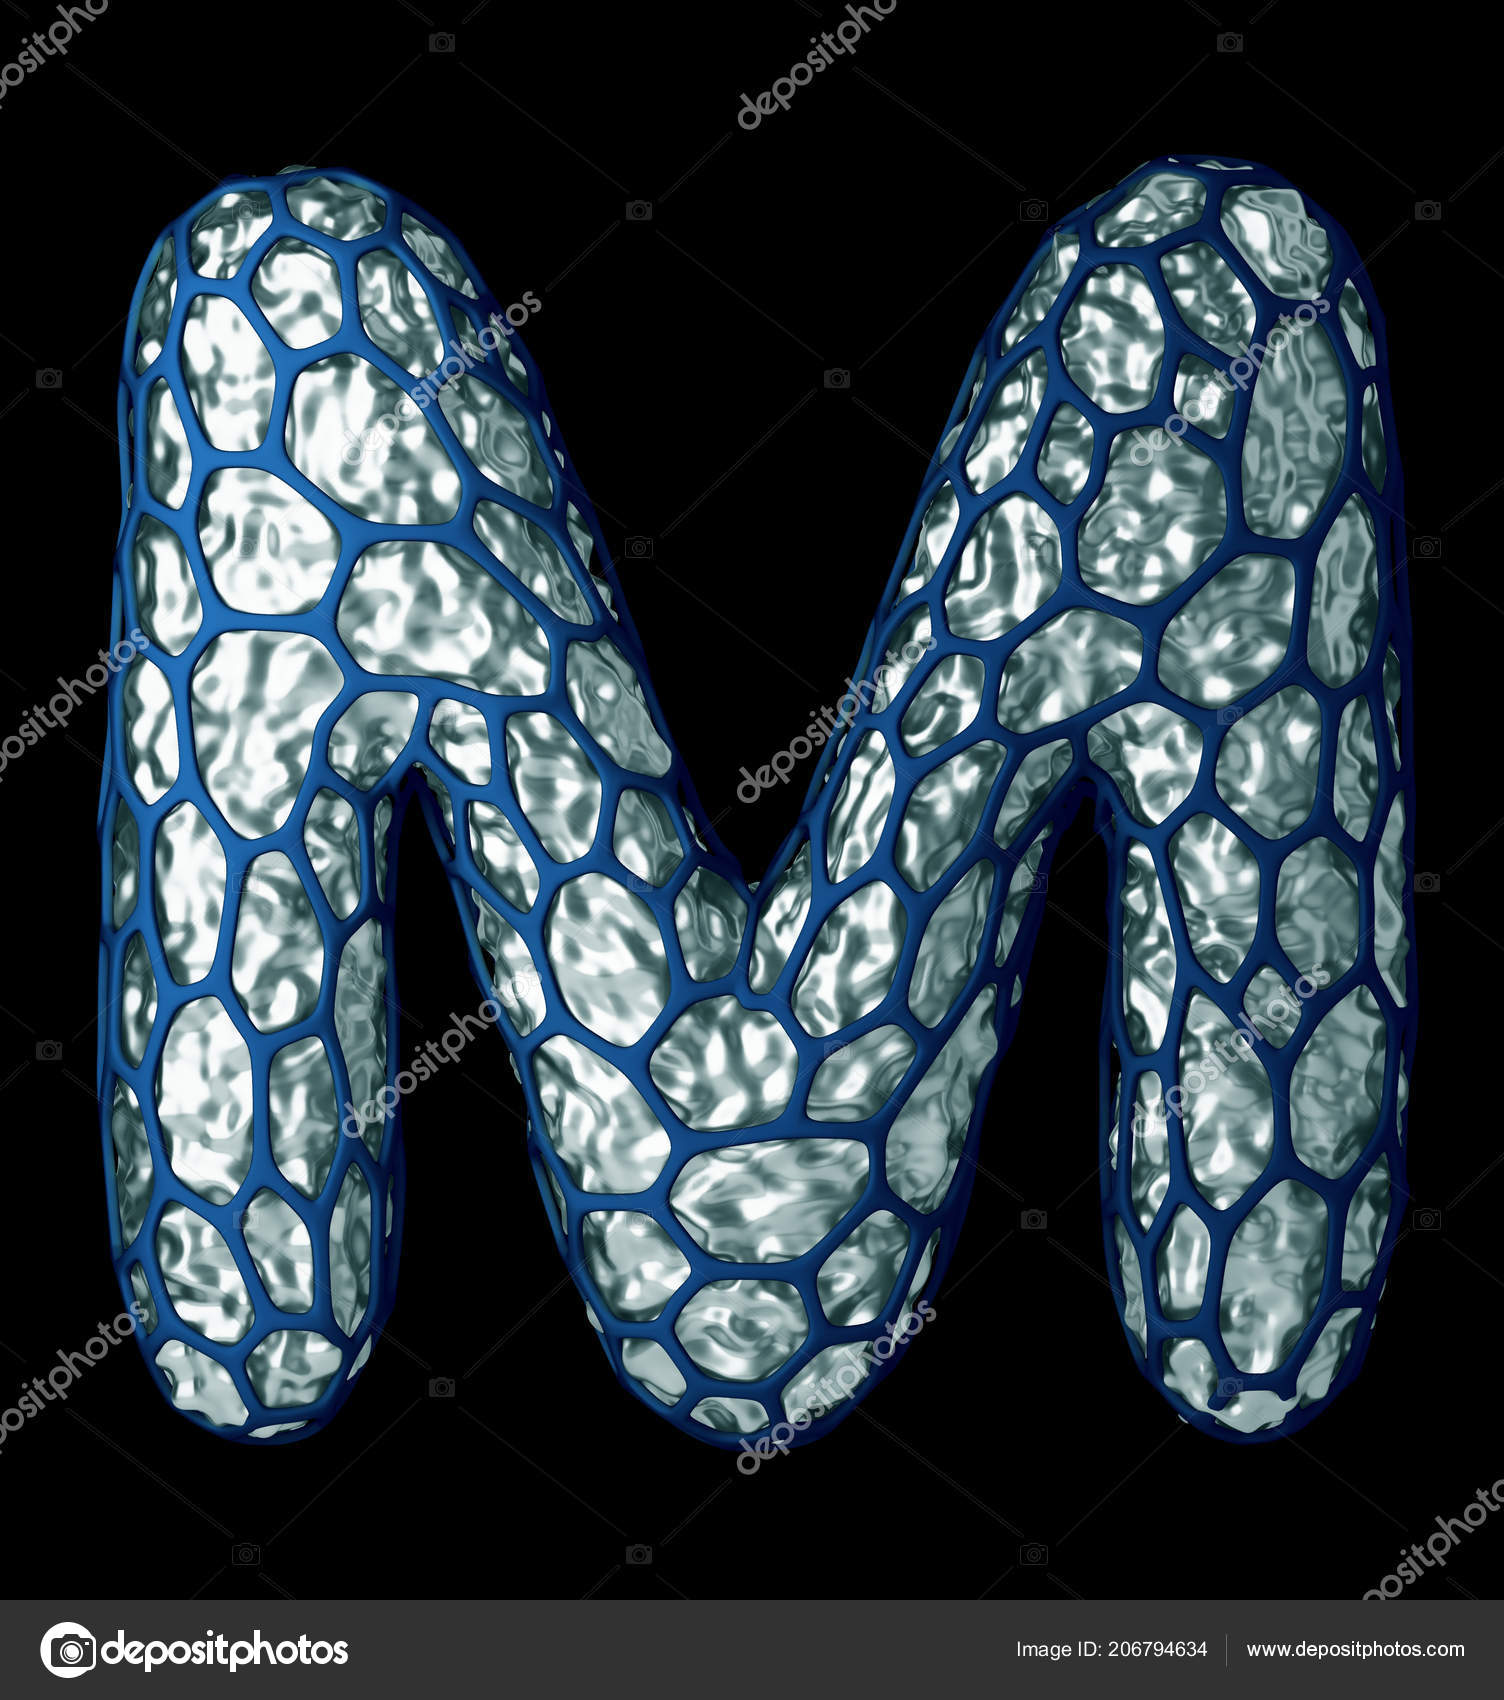 Silver Shining Metallic 3d With Blue Cage Symbol Capital Letter M